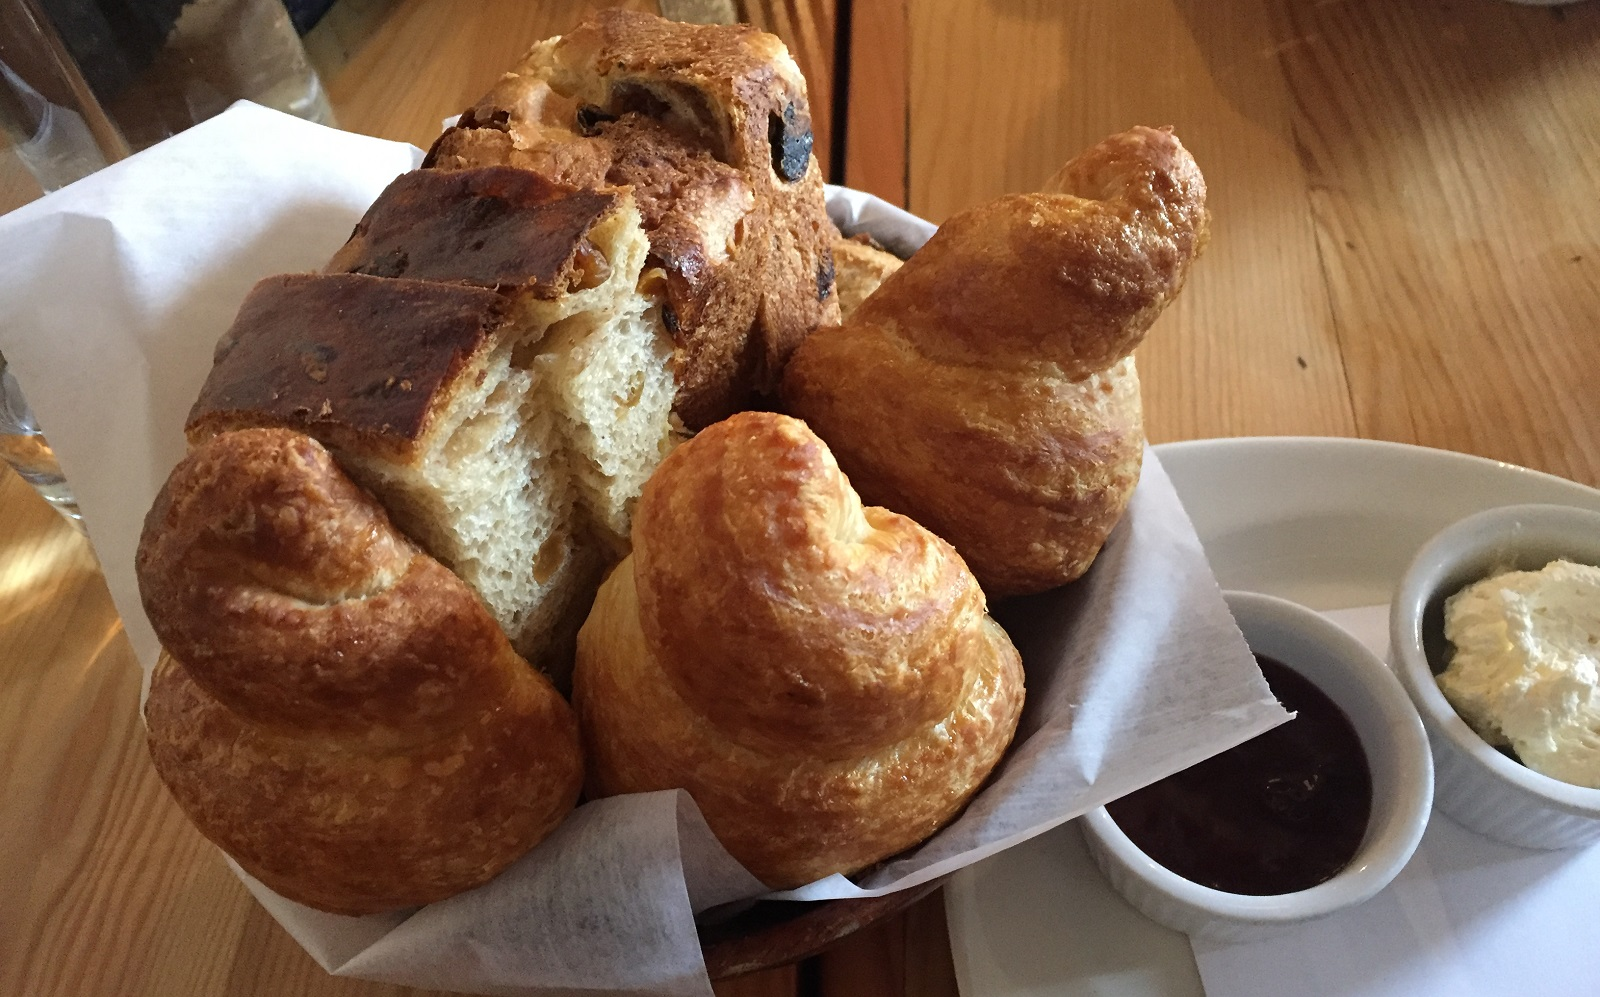 Brunch Game of Scones bread basket comes with cinnamon-raisin bread, croissants, housemade jam, and butter. (Caitlin Hartney/Special to The News)